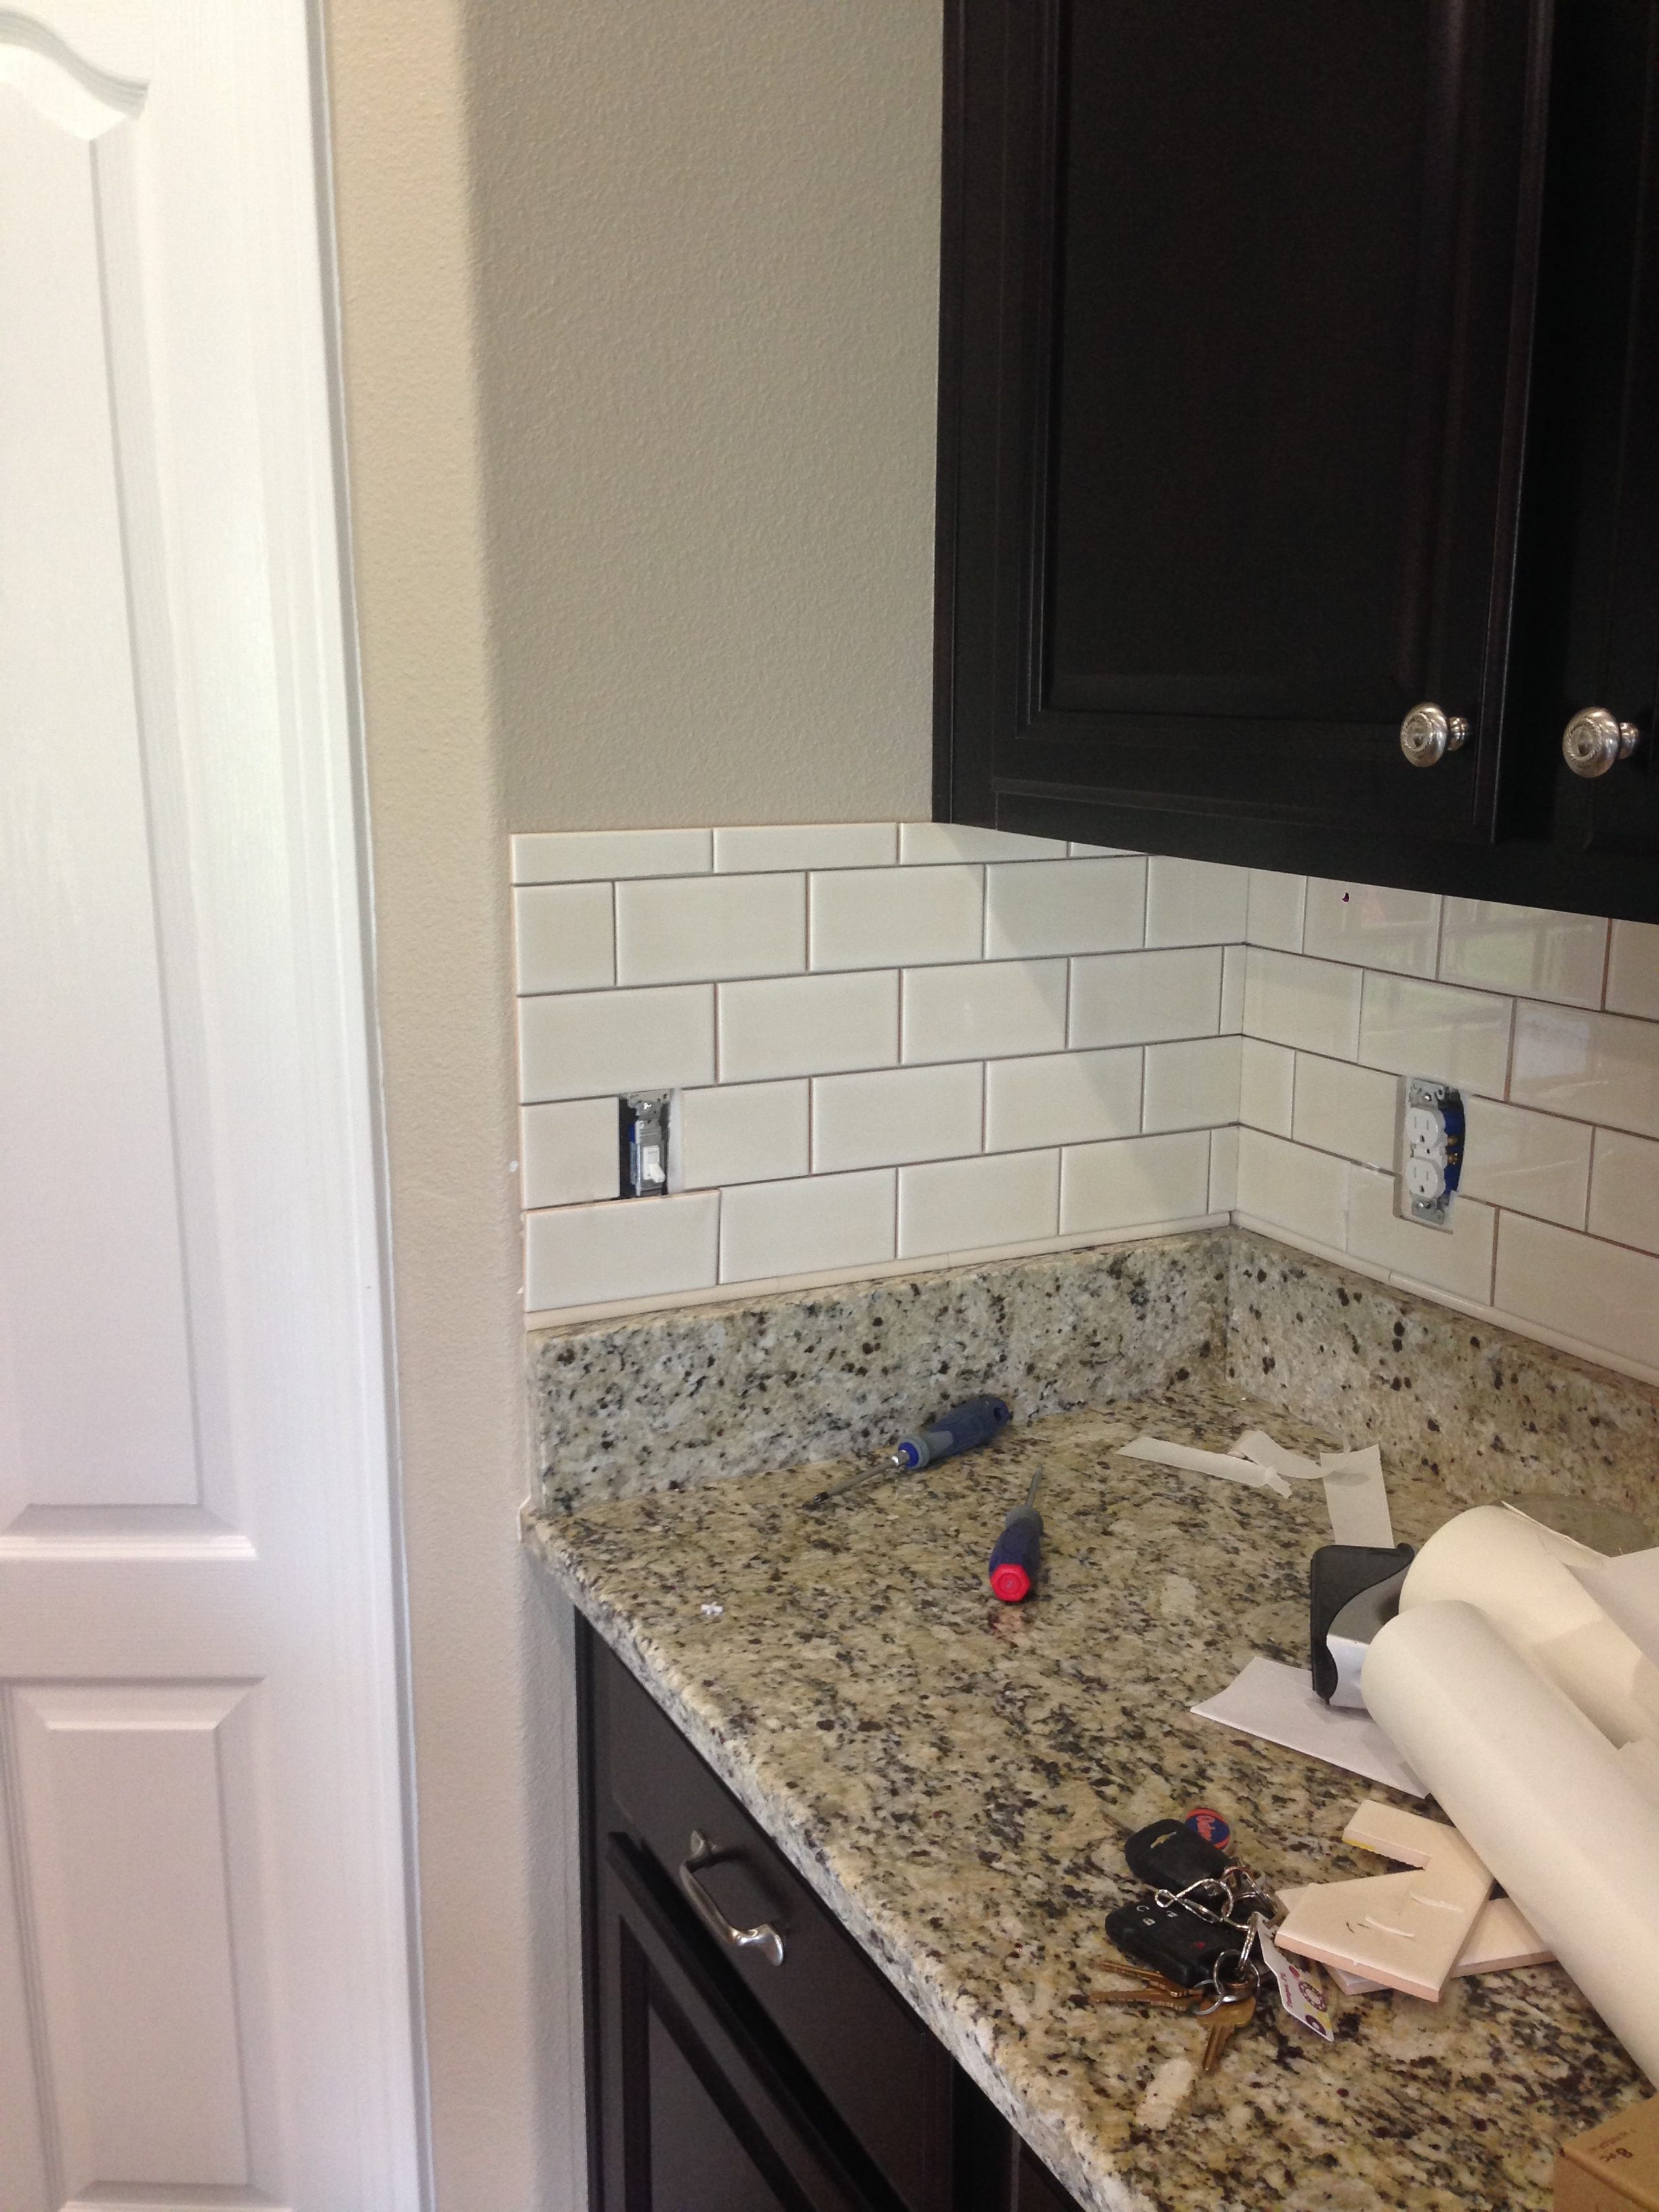 diy kitchen backsplash frills drills the only other part of backsplash to complete was this tiny section on the left side of our refrigerator it was difficult with quite a few cuts due to the